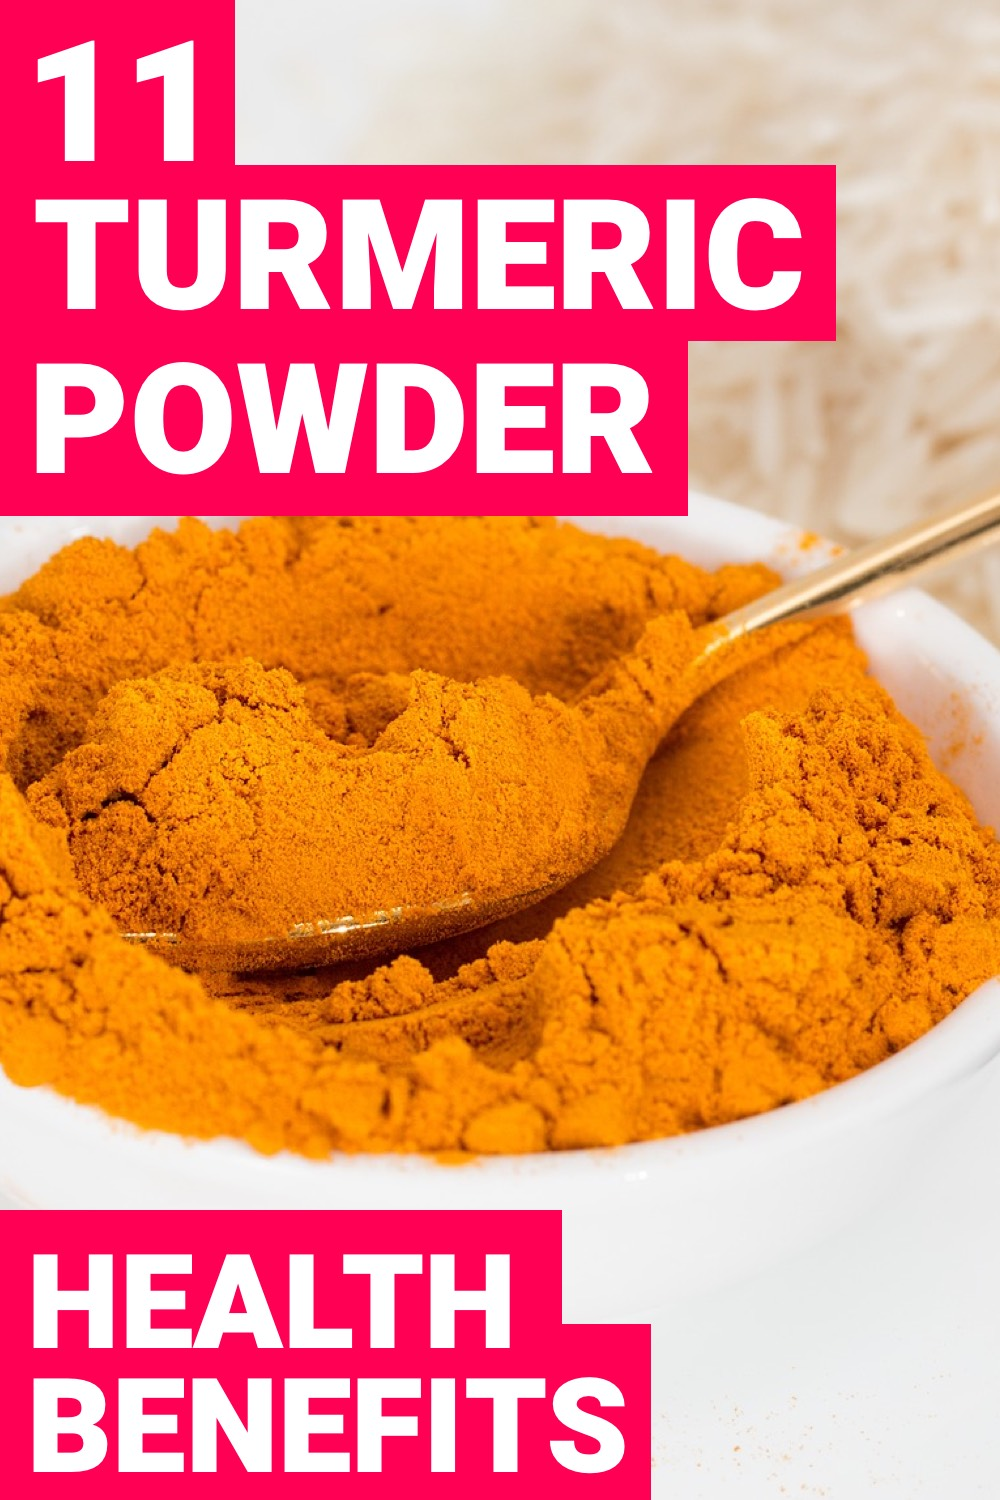 Having turmeric around is never a bad idea. Here are 11 turmeric benefits you need.